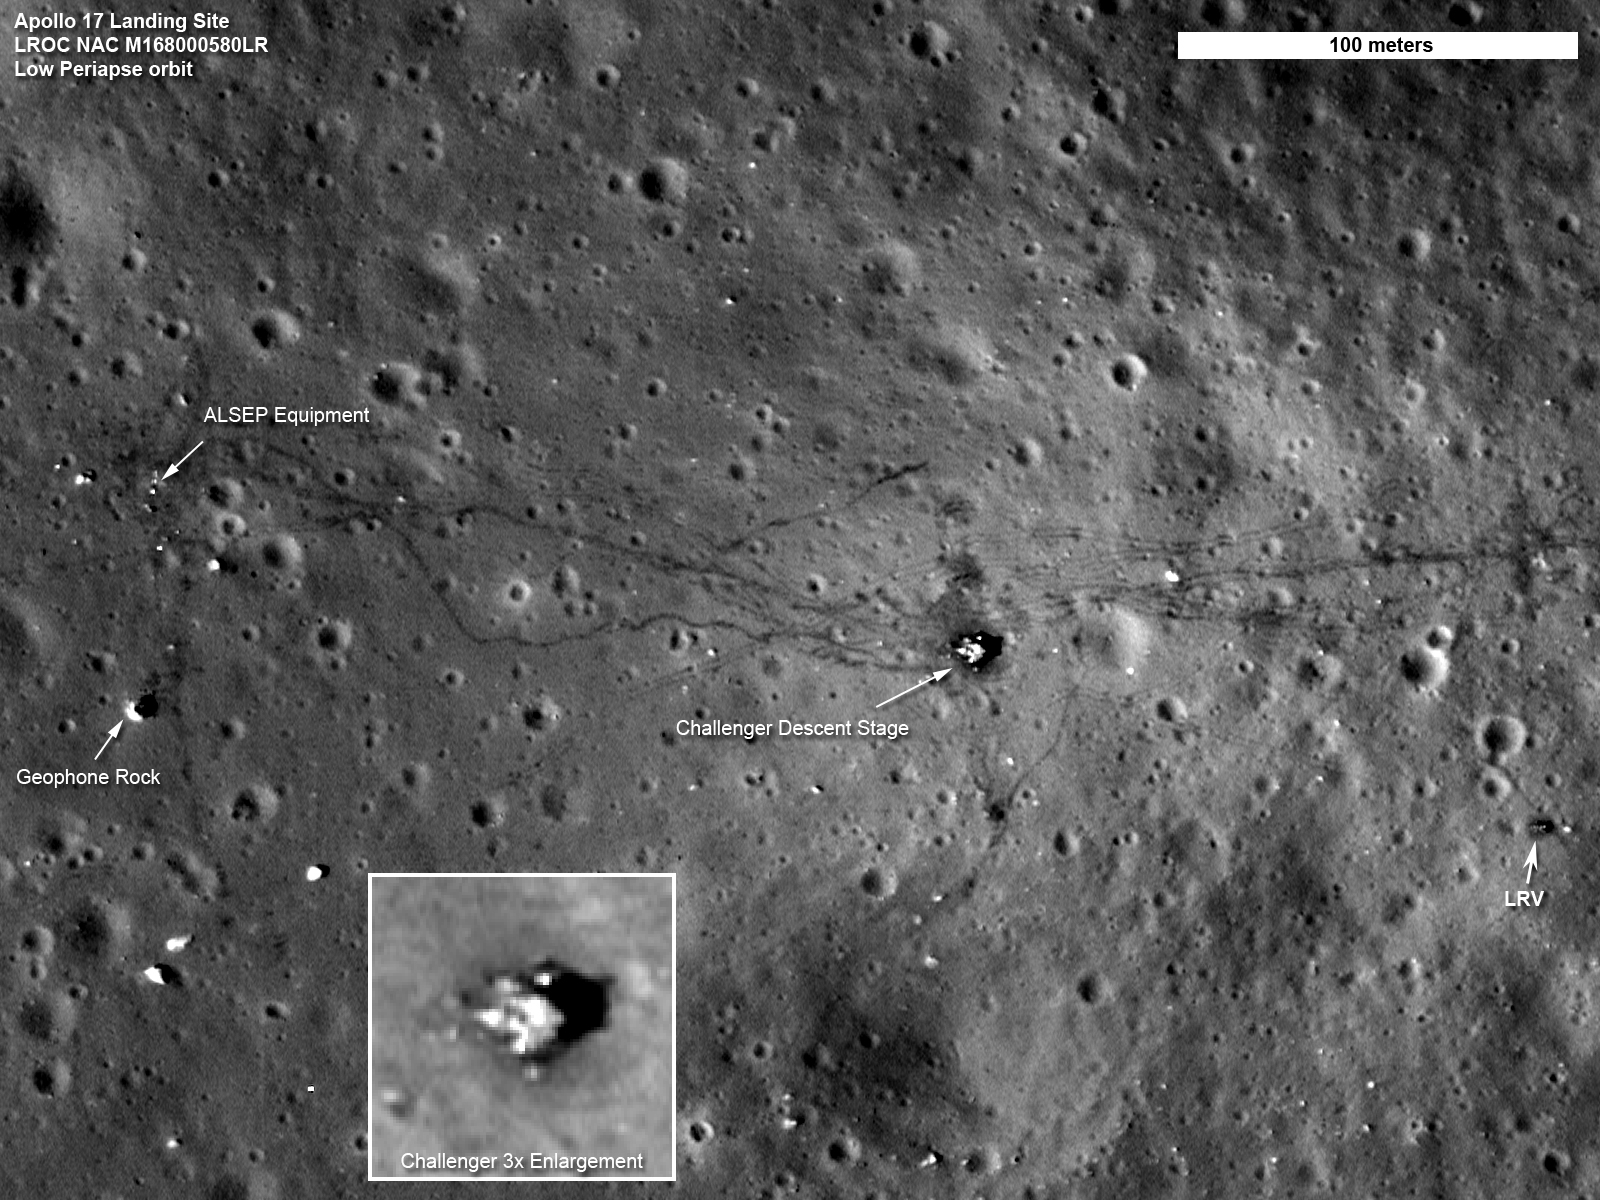 A picture of the Apollo 17 landing site taken by the Lunar Reconnaissance Orbiter which, as the name implies, was in orbit around the Moon when it took these rec